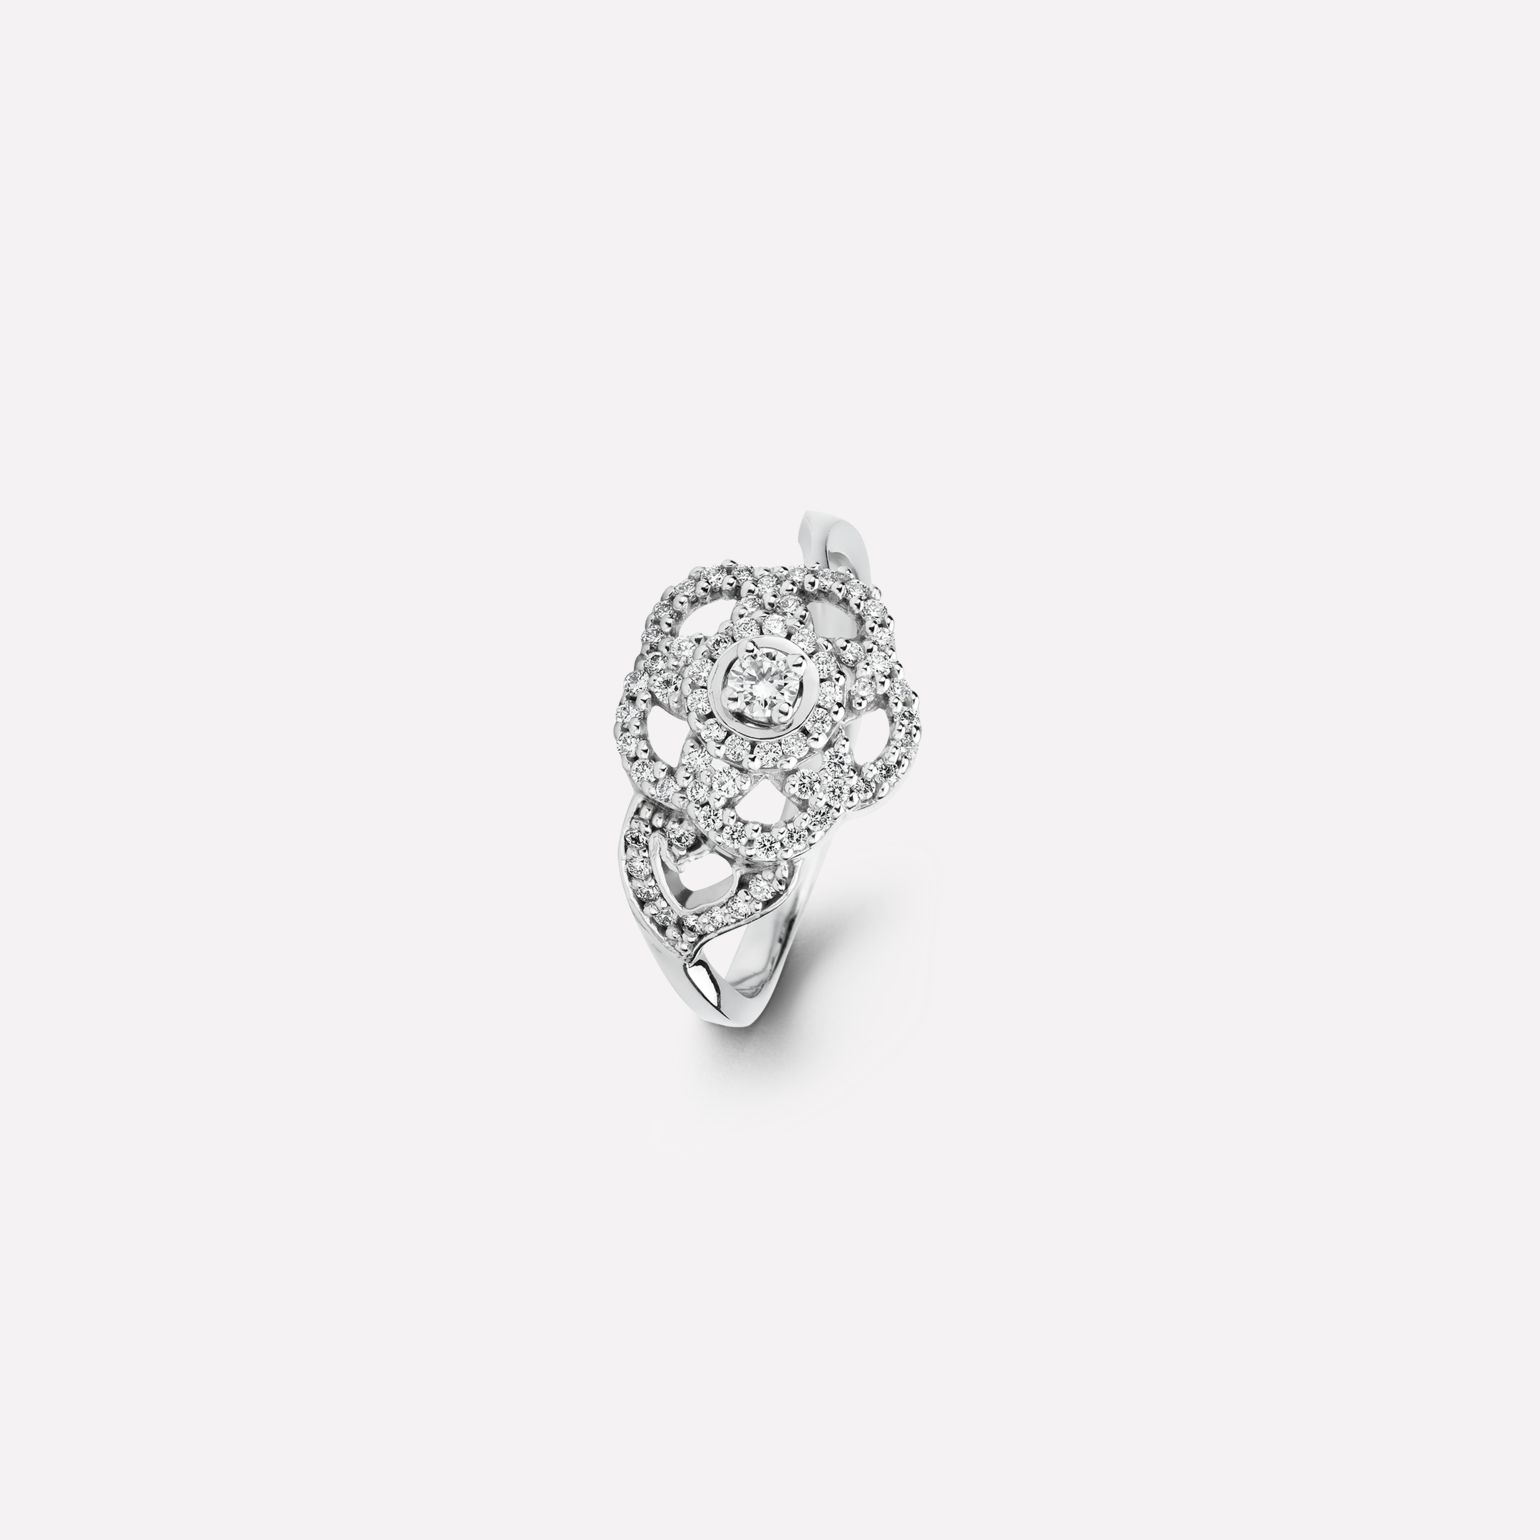 Camélia Ring Camélia Brodé ring in 18K white gold, diamonds and central diamond